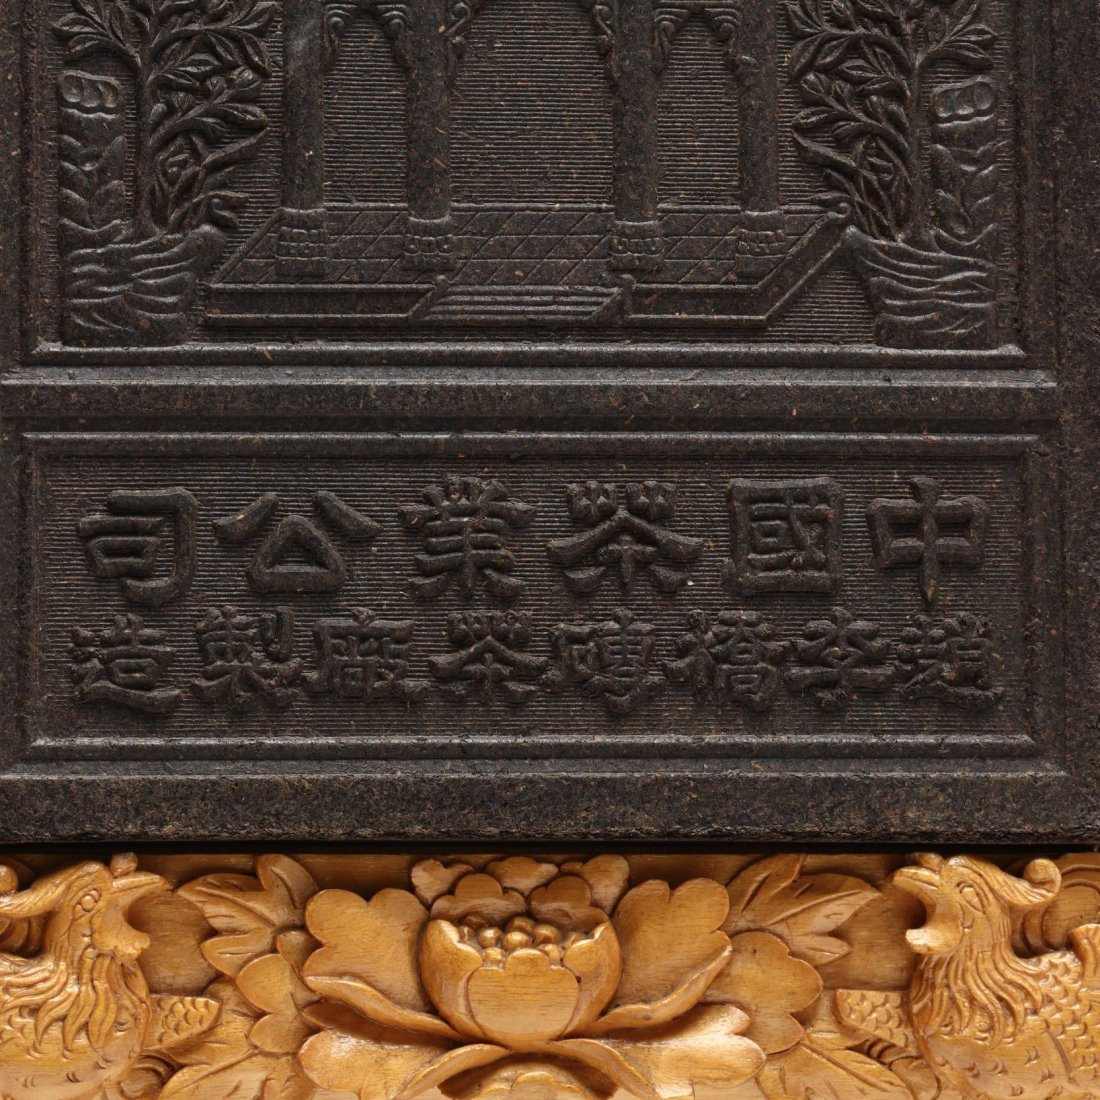 Chinese Framed Hubei (Black Tea) Brick - 2